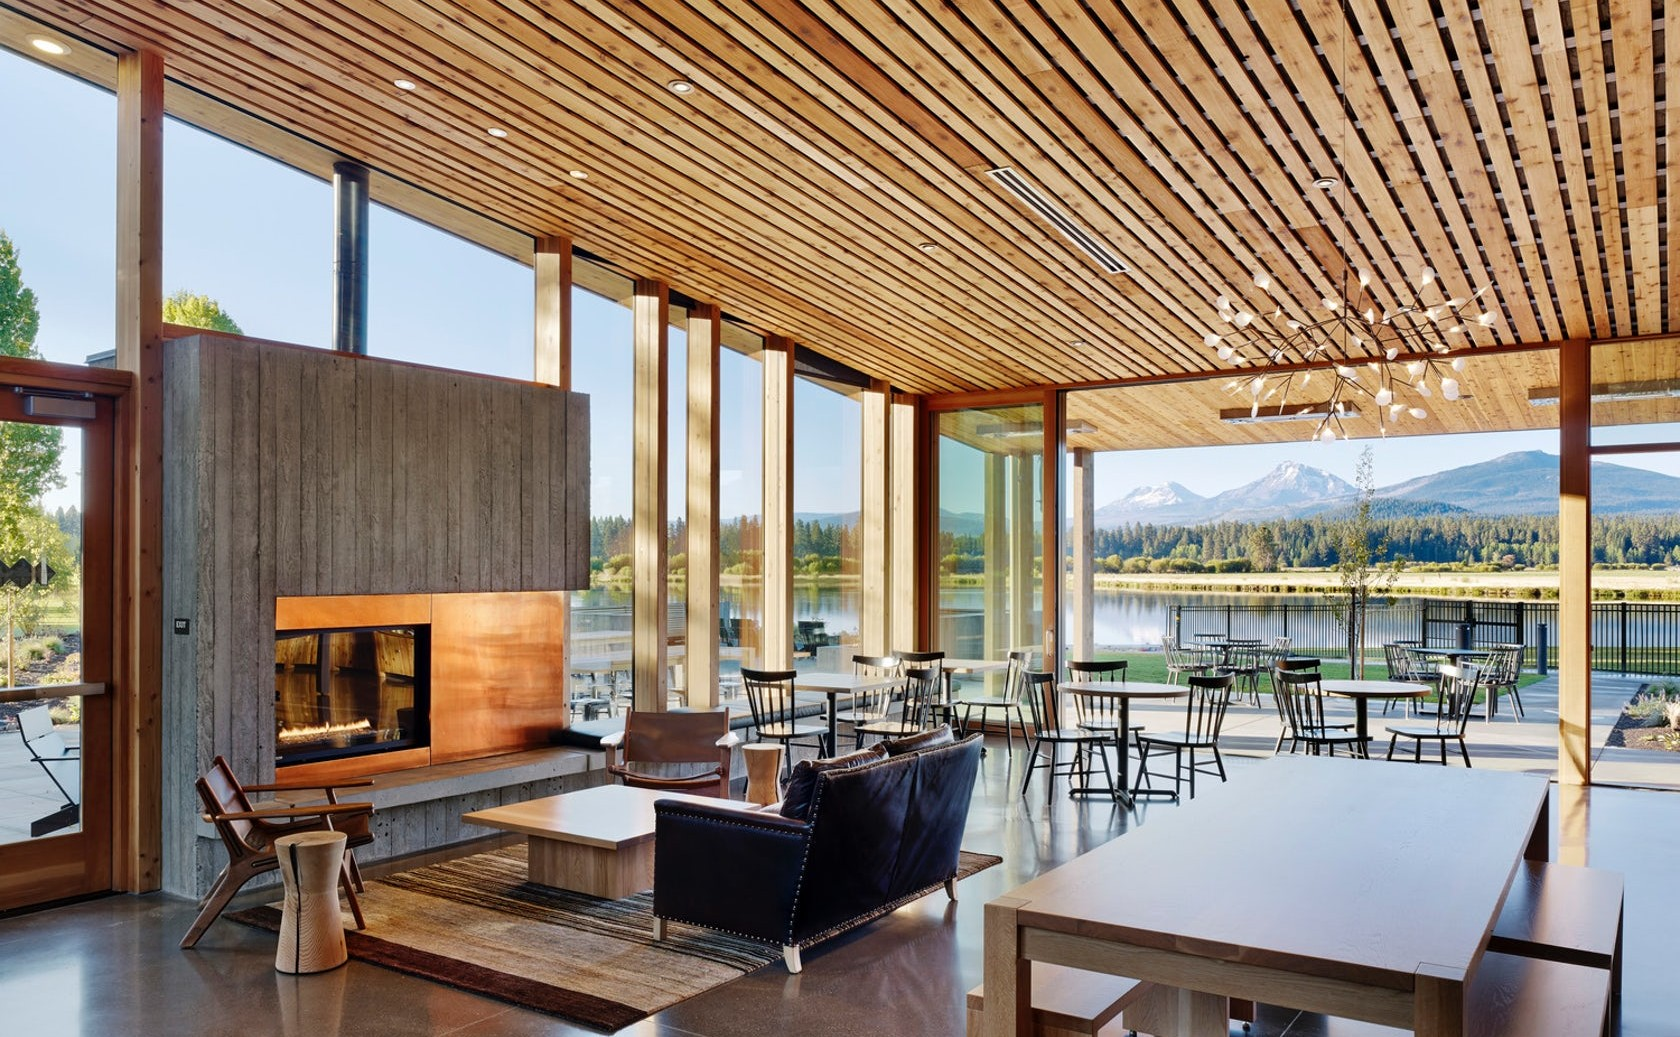 Lakeside at Black Butte Ranch | Hacker Architects